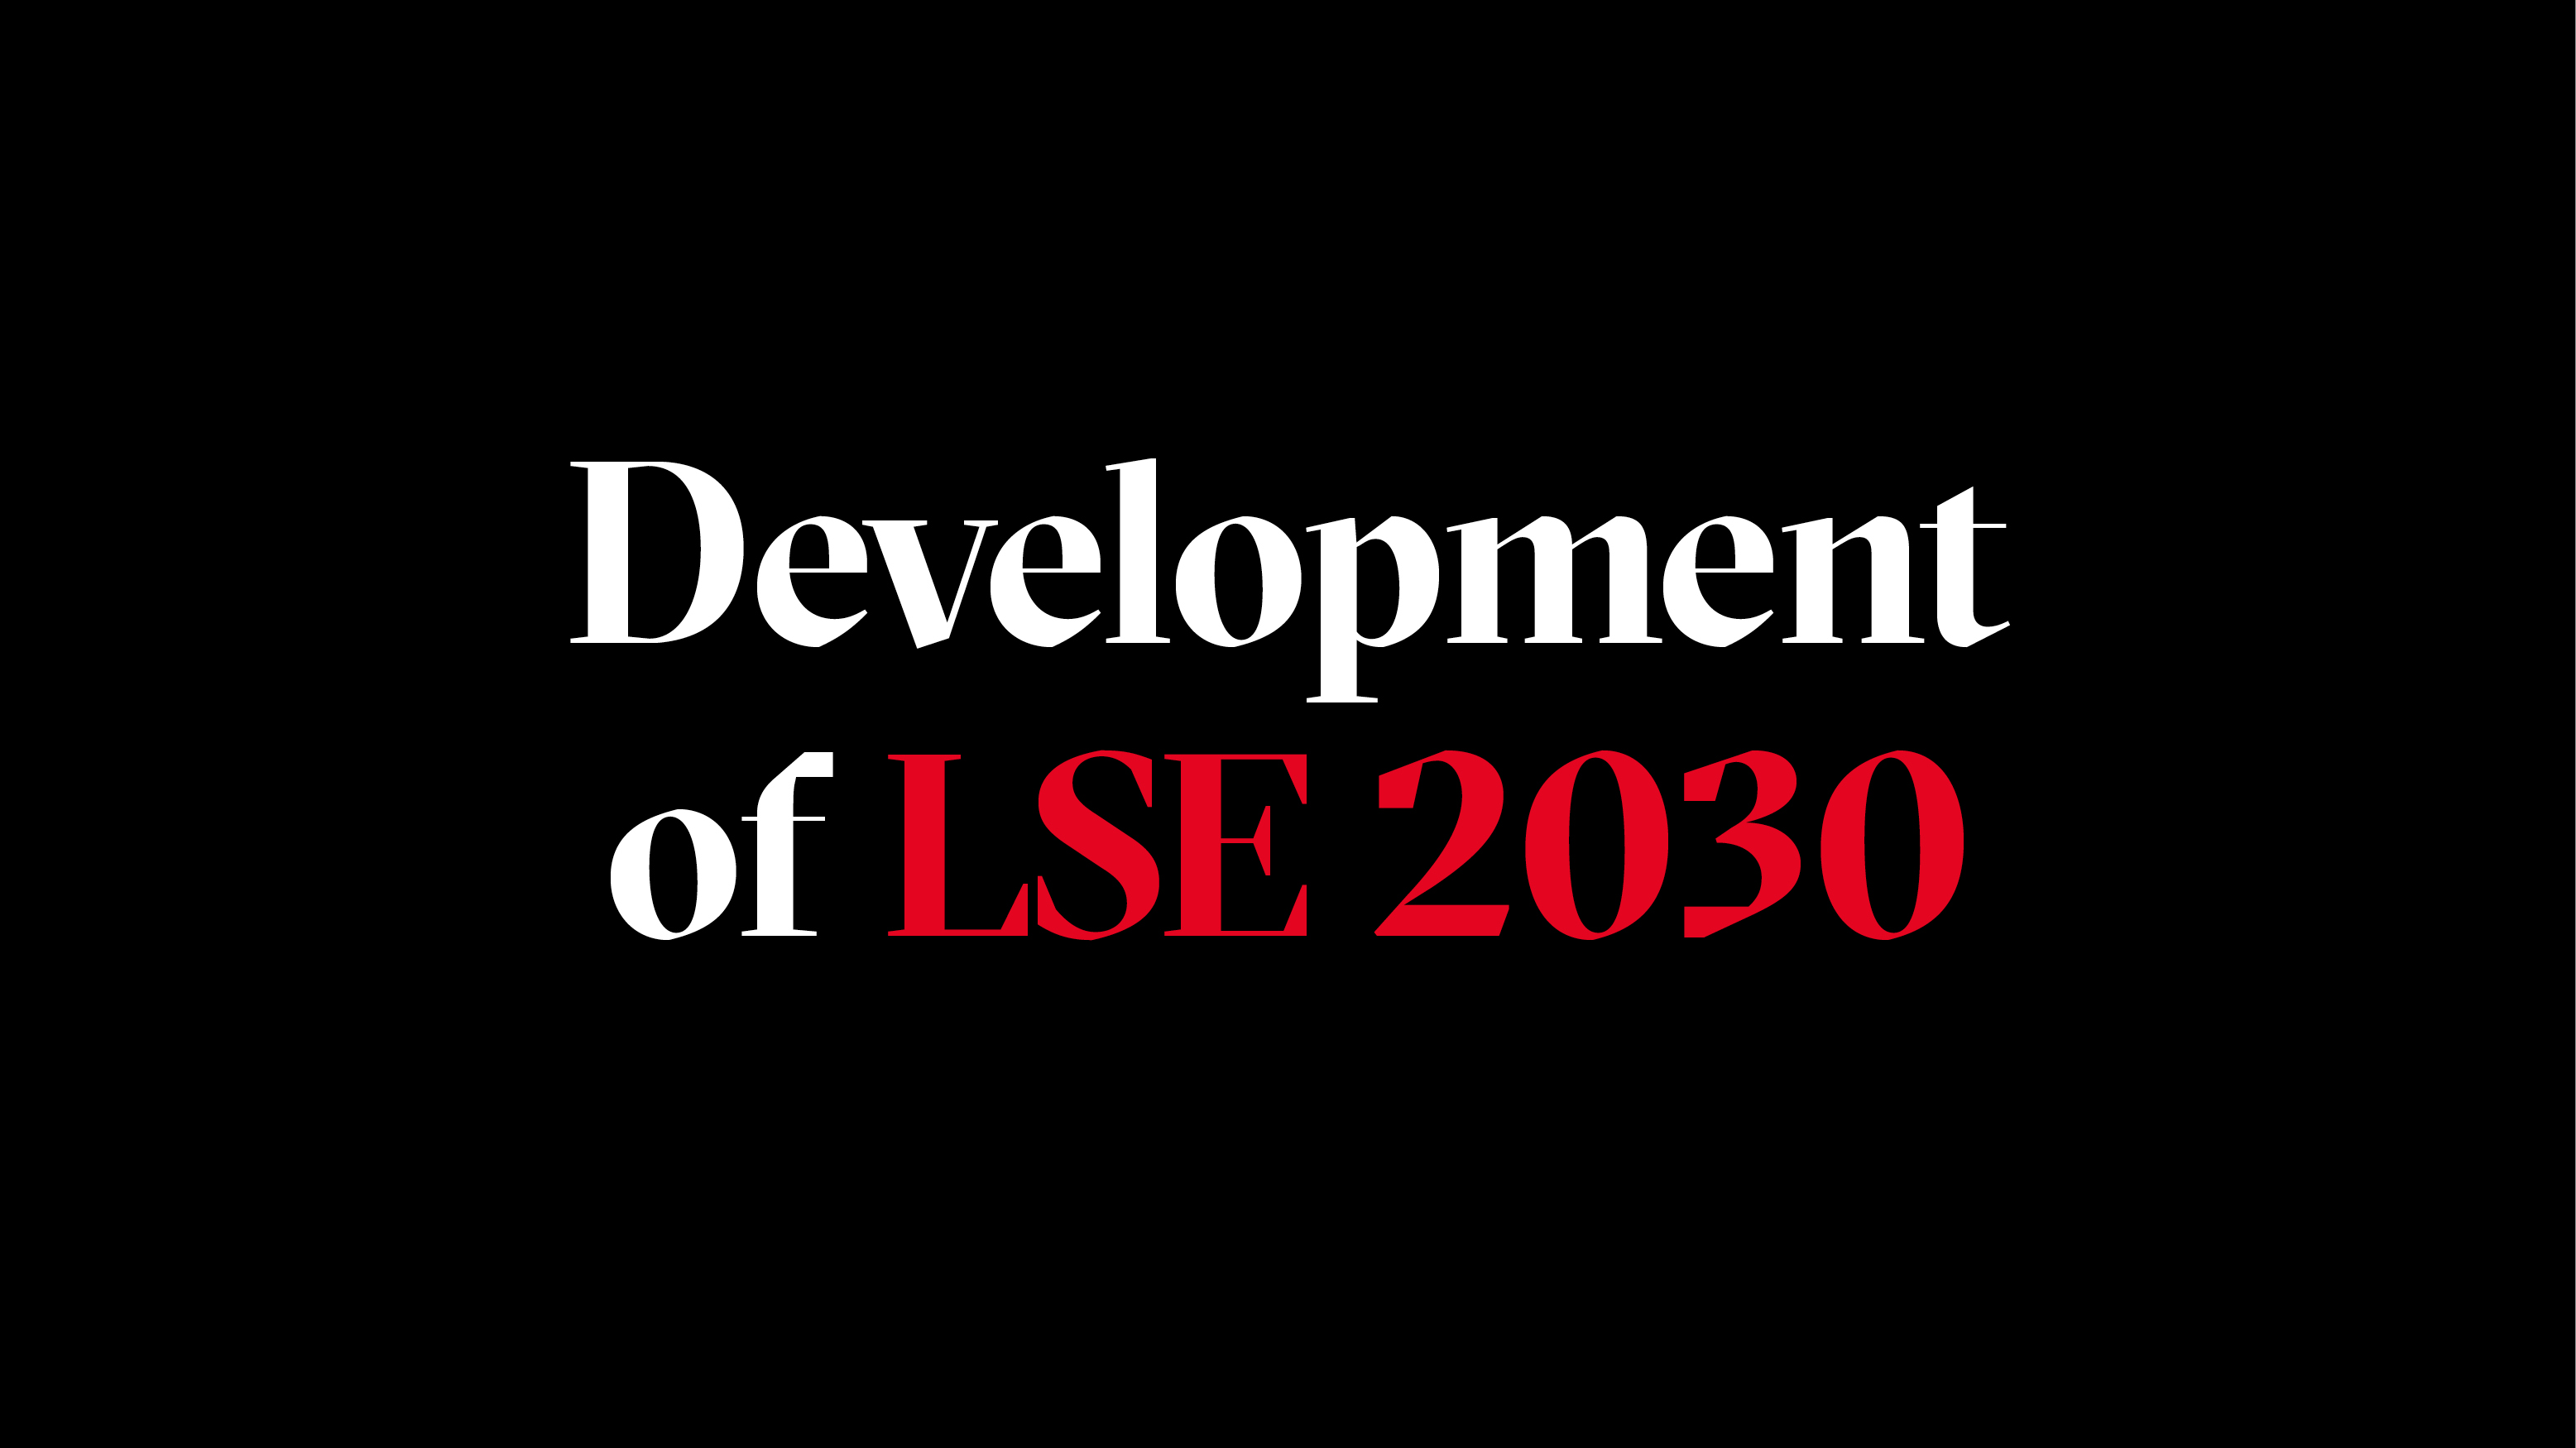 Development of LSE 2030